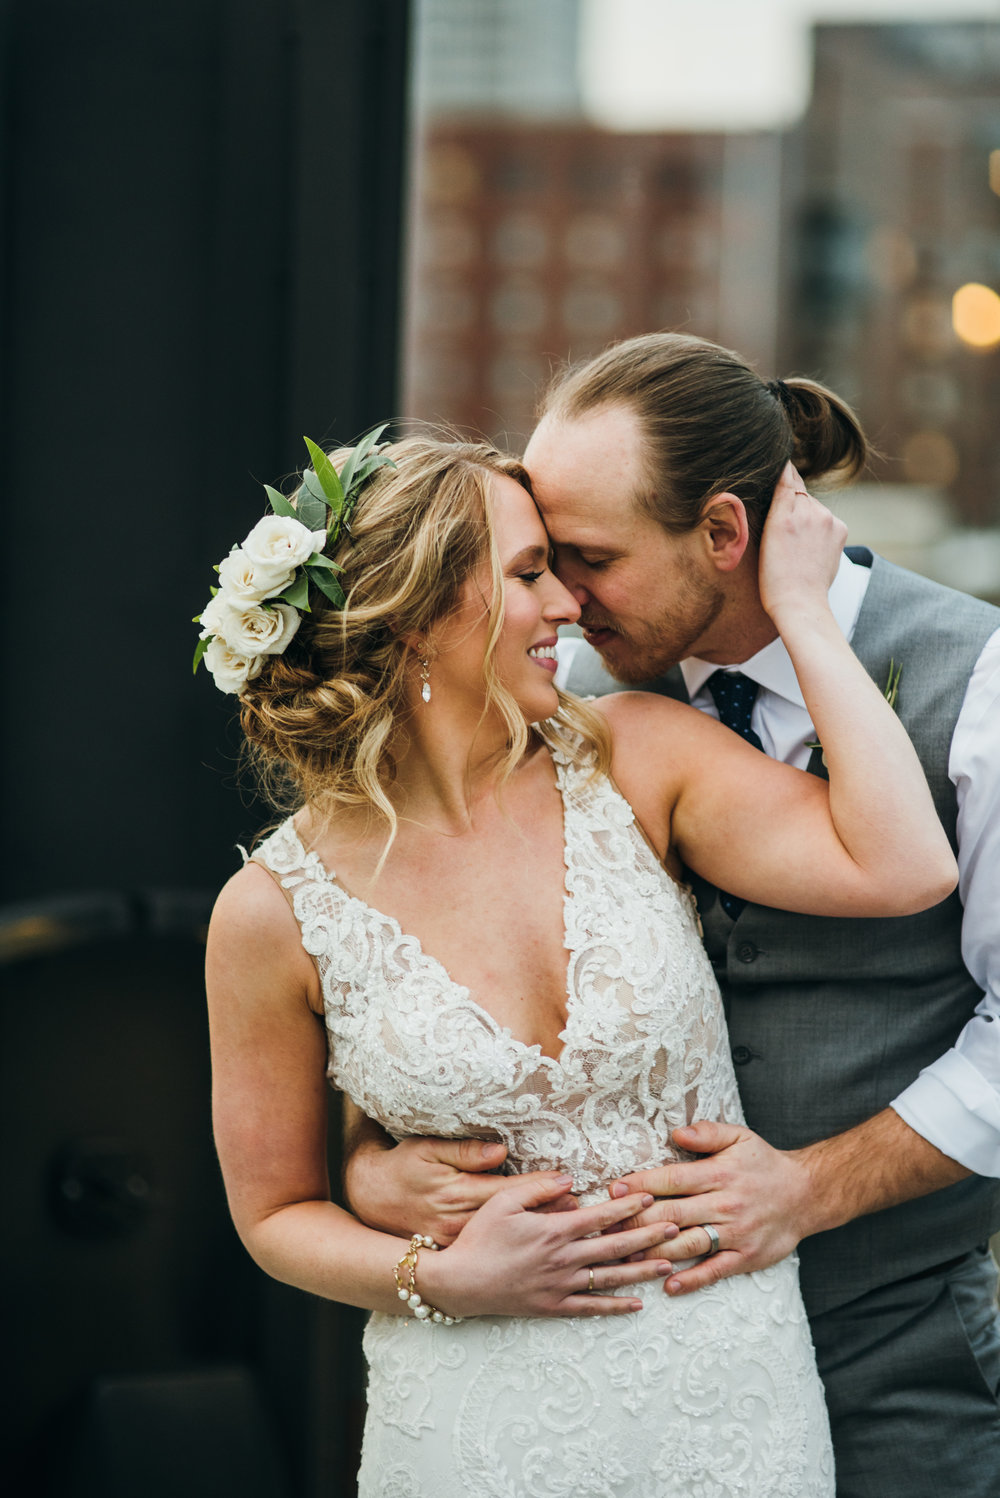 Kate+Chris_558.jpg